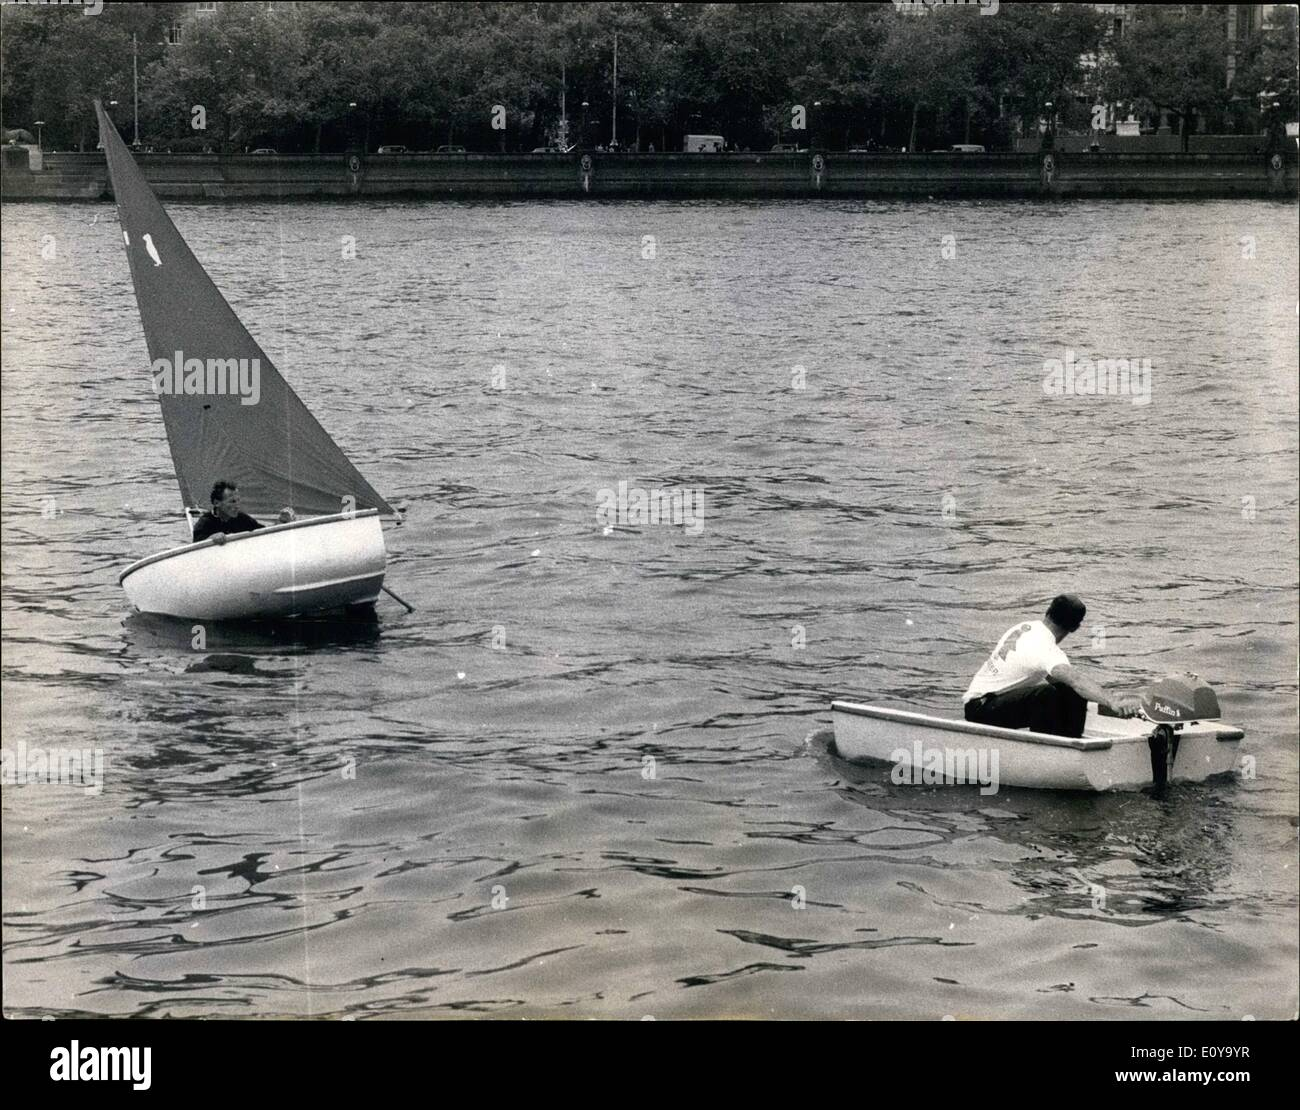 Jun. 06, 1969 - The new lightweight 'Pioneer' Dinghy in Polystyrene is demonstrated on the Thames: The ''Pioneer'', a revolutionary 9ft. 6 in. dinghy a product of the unique combination of the expertise of the famous yacht designer, Roland Prout and a team of chemists from the Polycell Laboratories, was demonstrate on the Thames today. Because it is moulded in high density Polystyrene and is made by mass production methods, it is new possible to market the beat,complete with sails, mast and all gear for only £59 - Stock Image